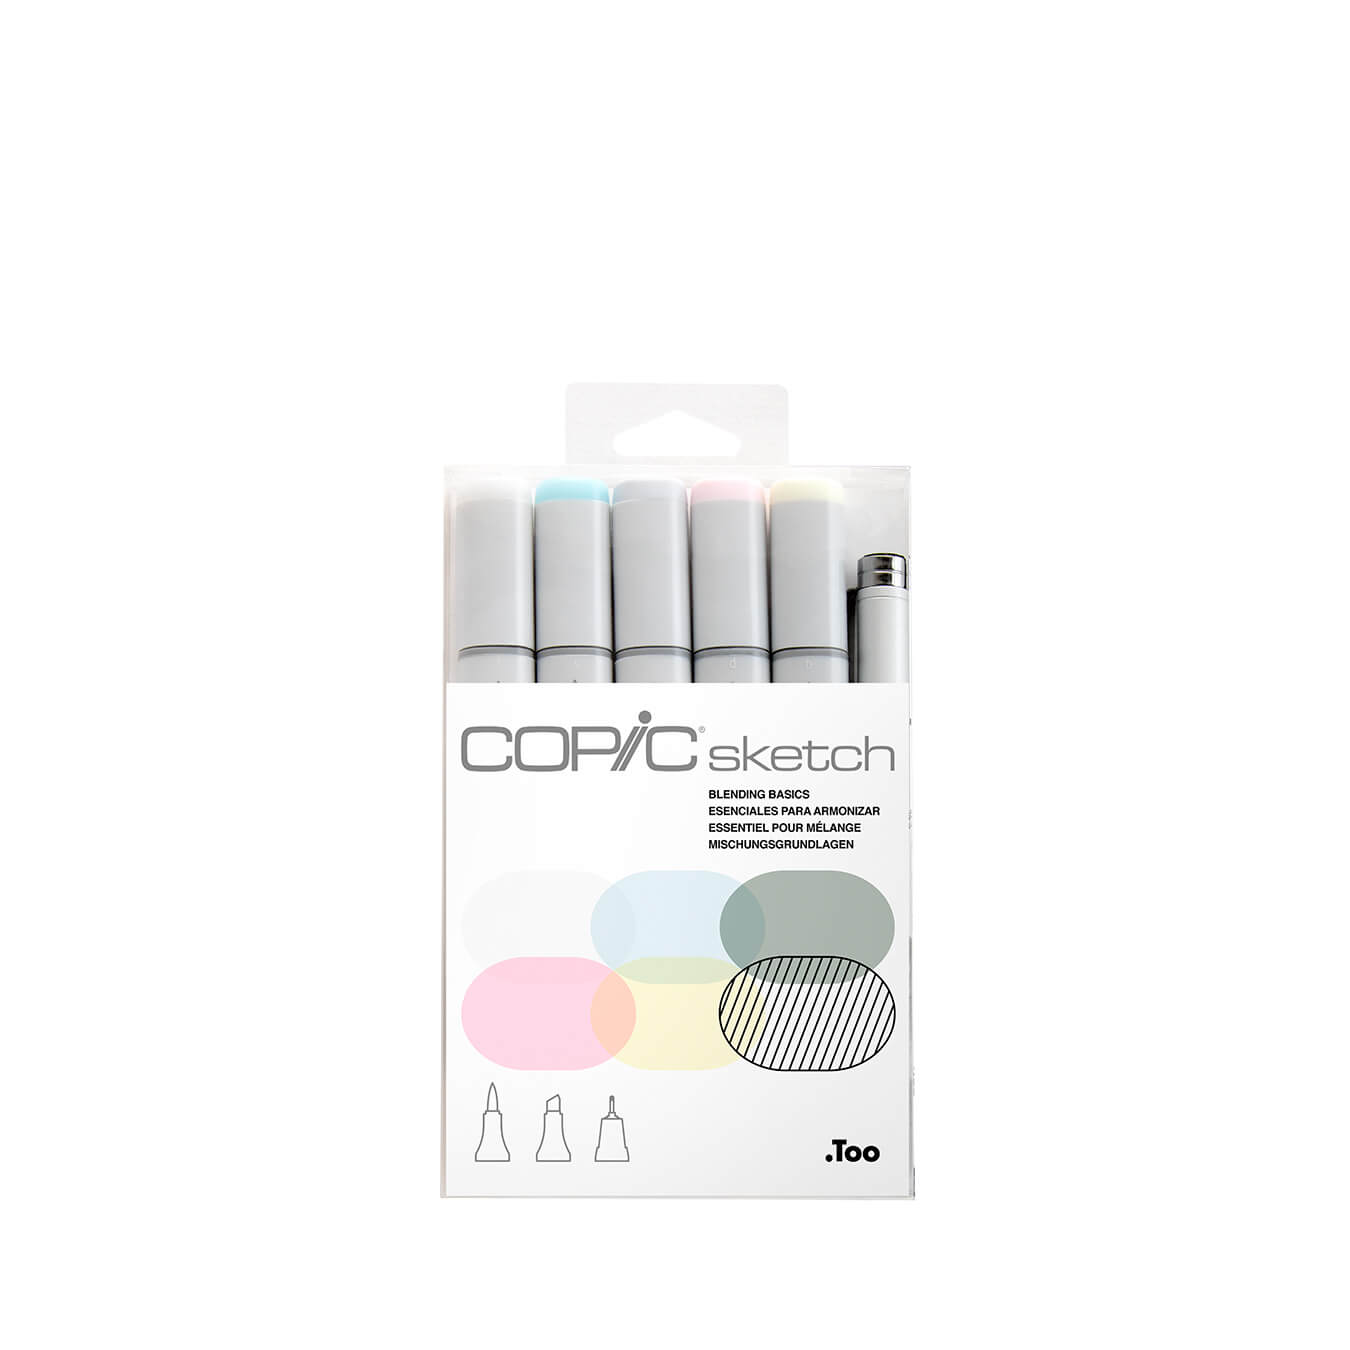 Copic Sketch 5 colors + Multiliner SP set Blending Basics